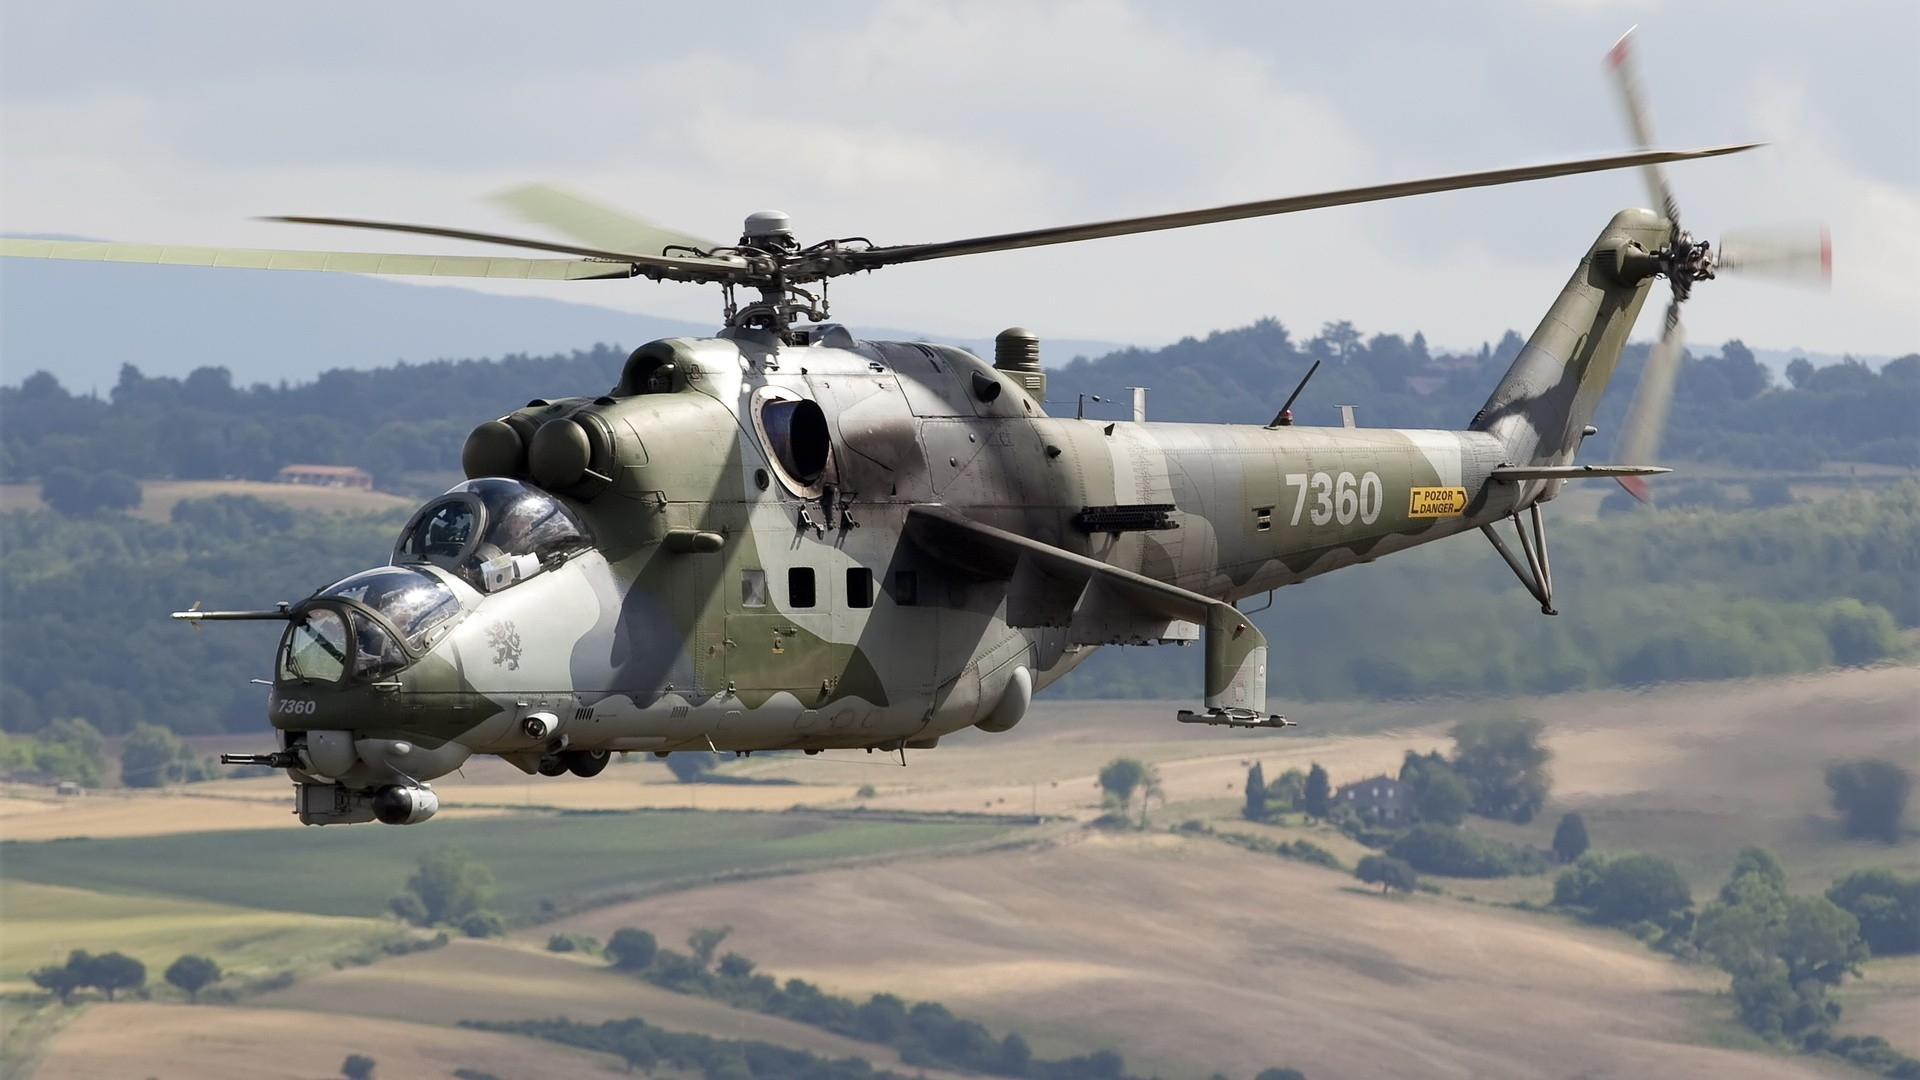 9 Mil Mi-24 most powerful military helicopters